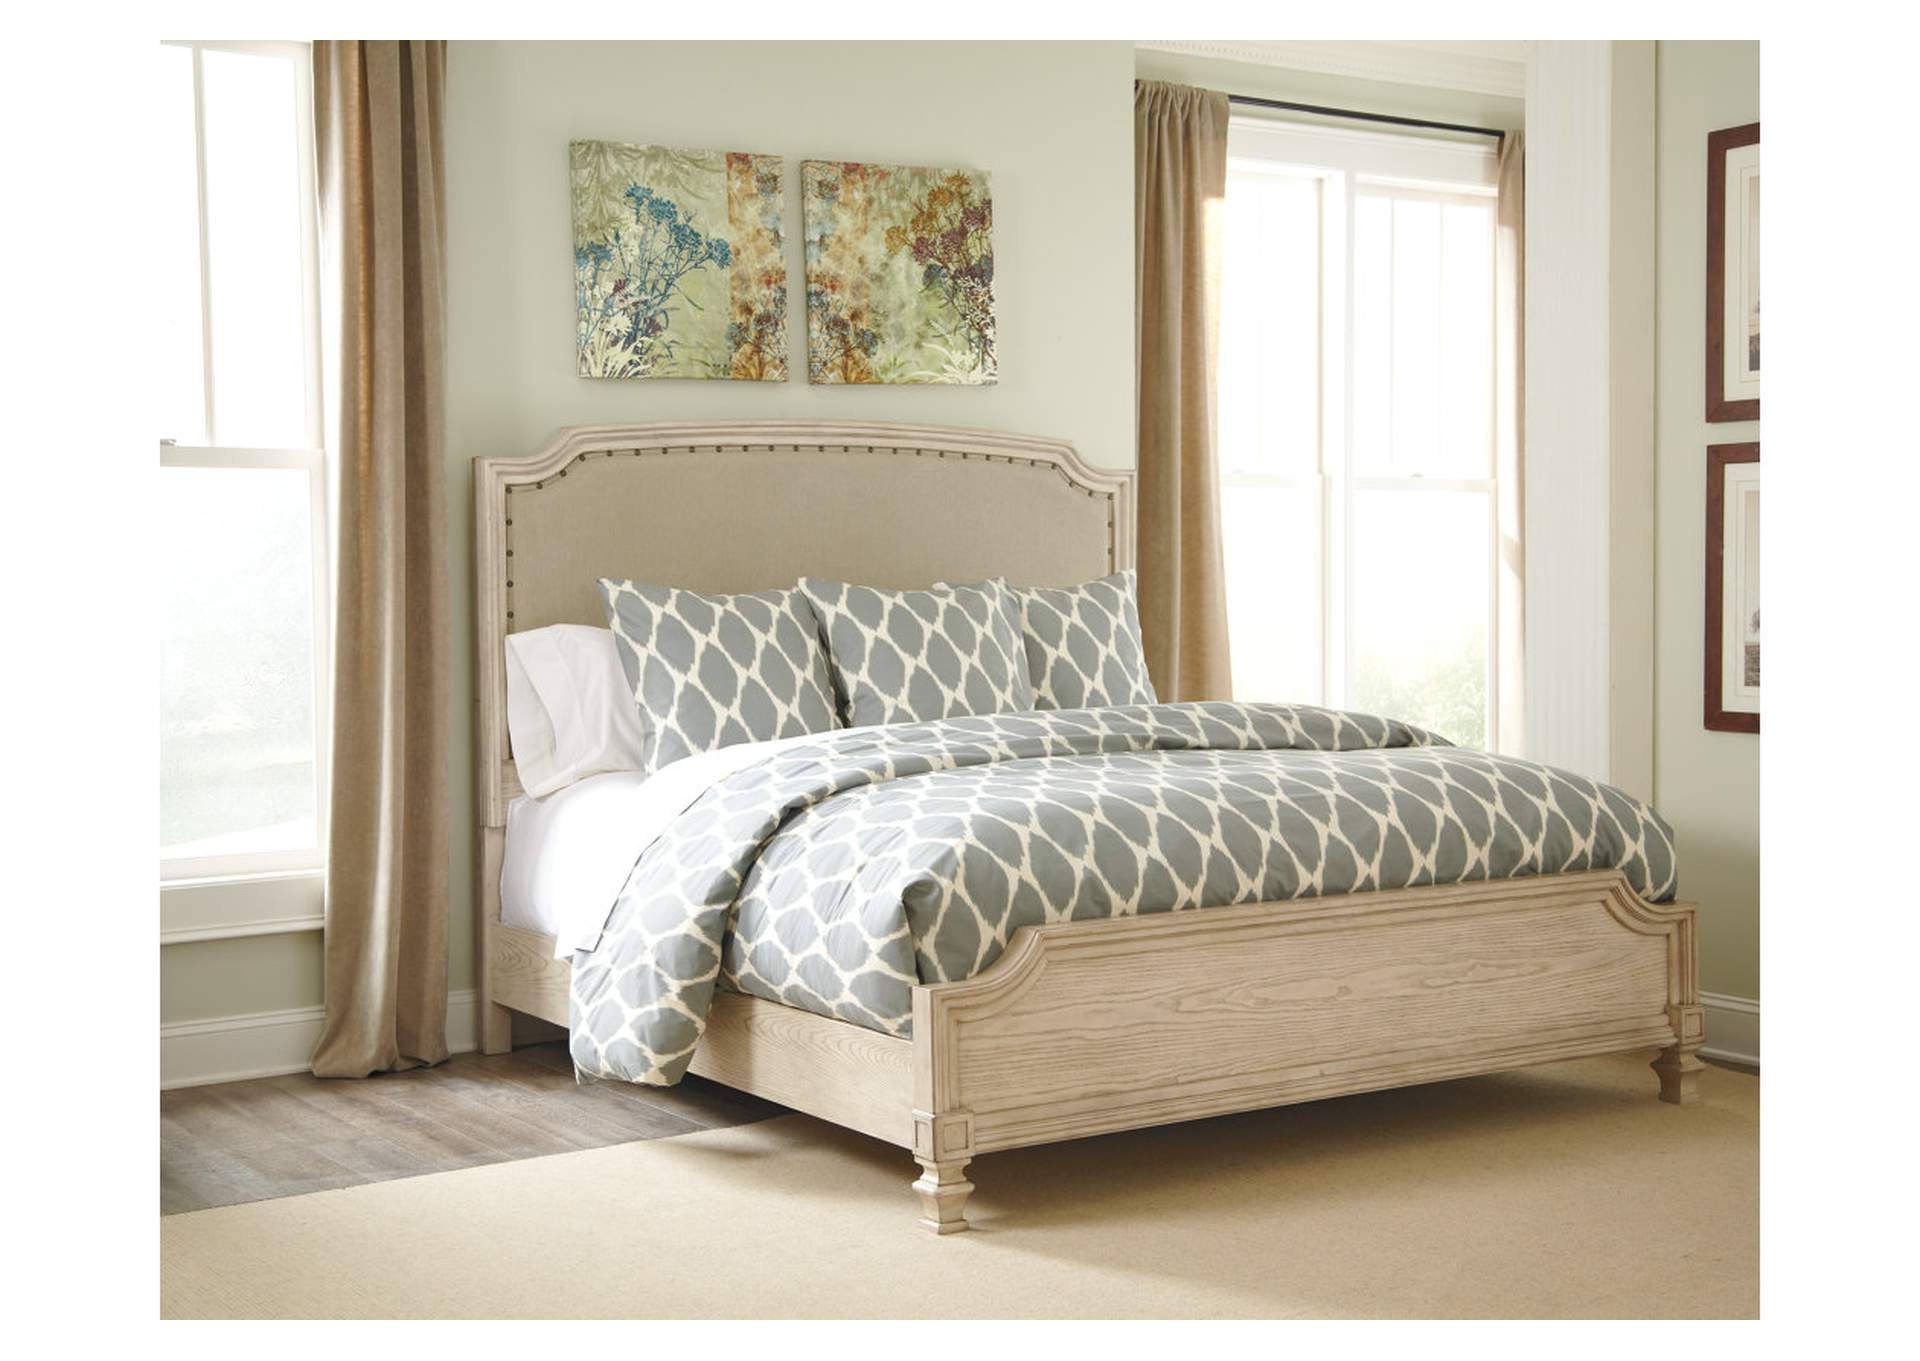 Demarlos King Upholstered Panel Bed,Signature Design By Ashley